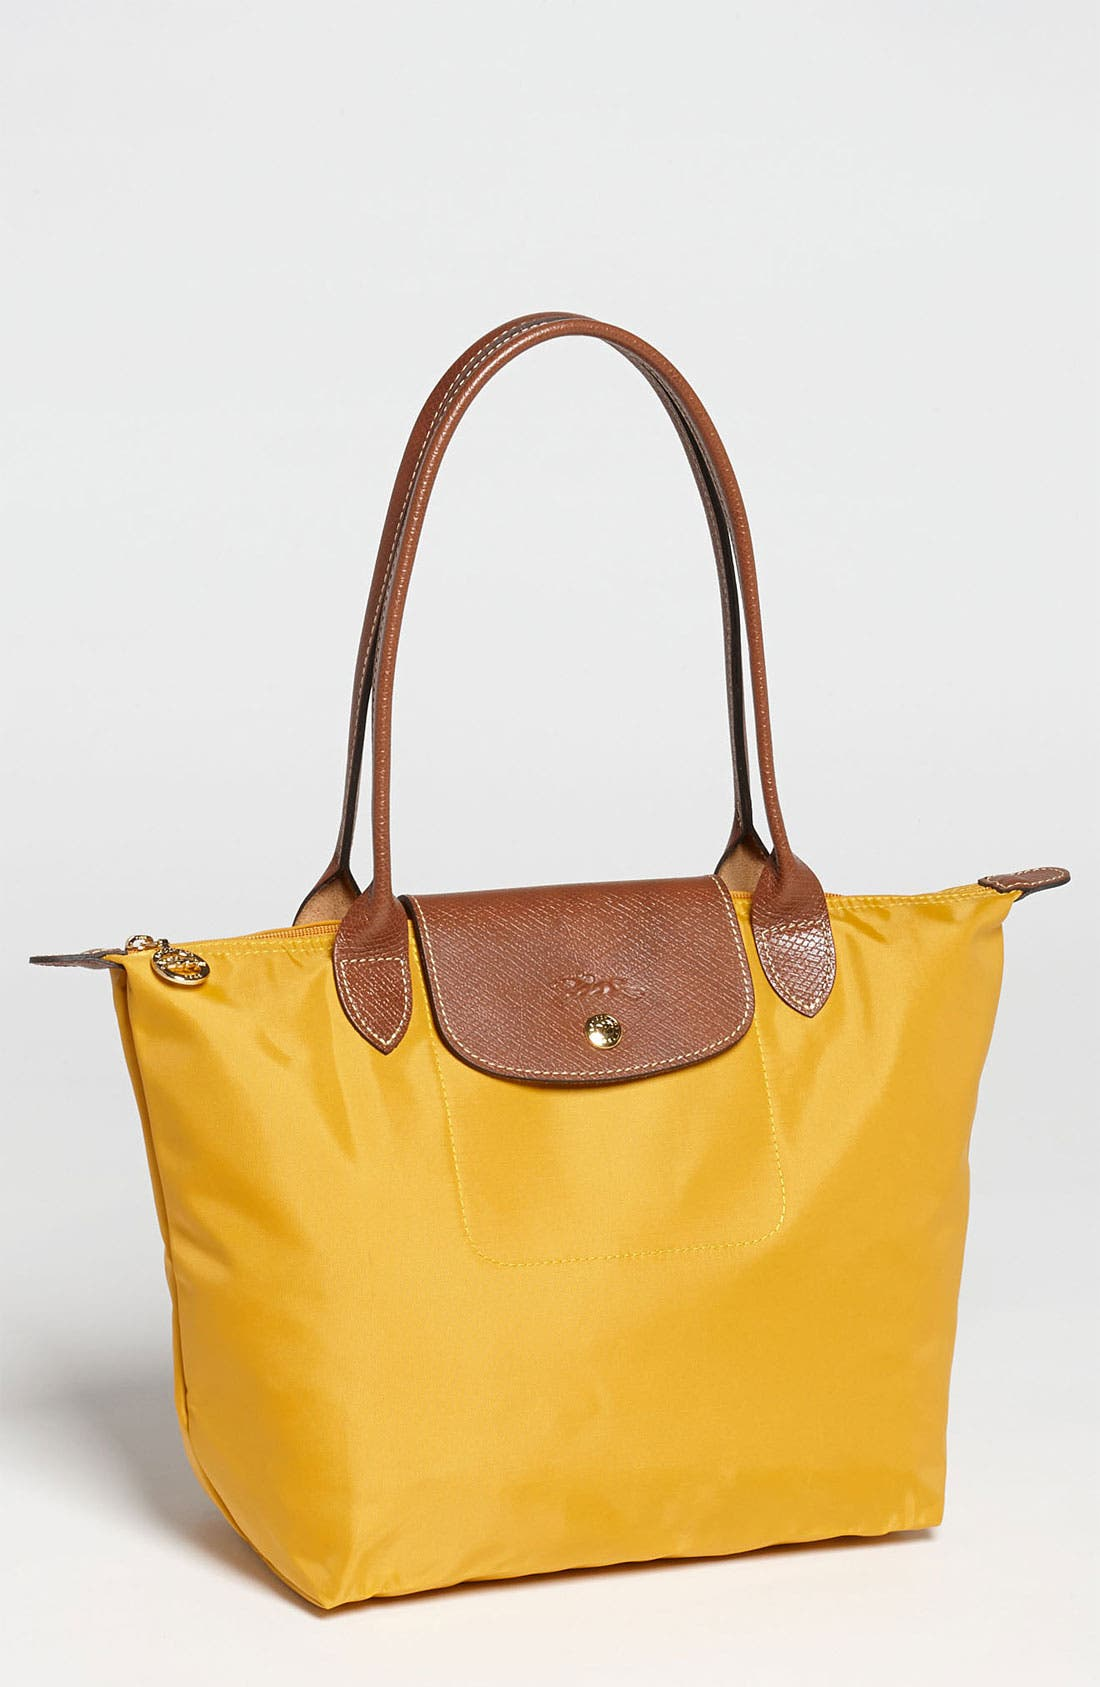 Longchamp 'Small Le Pliage' Shoulder Tote